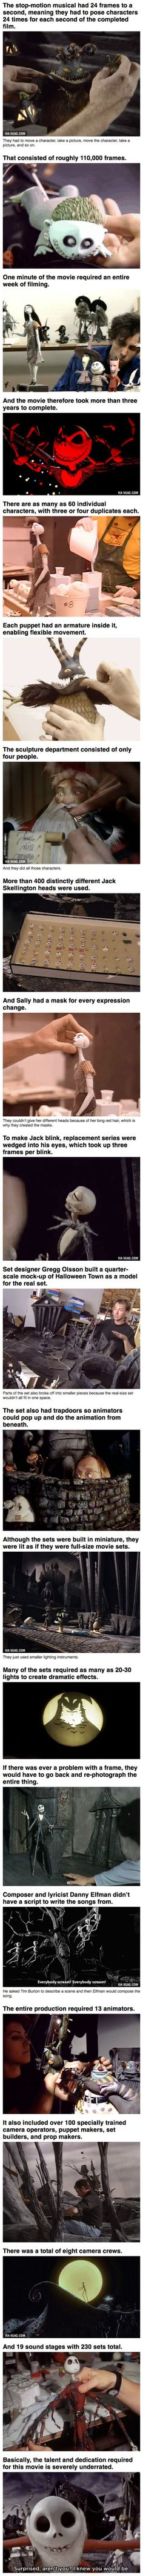 The Nightmare Before Christmas: Behind The Scenes… very cool.